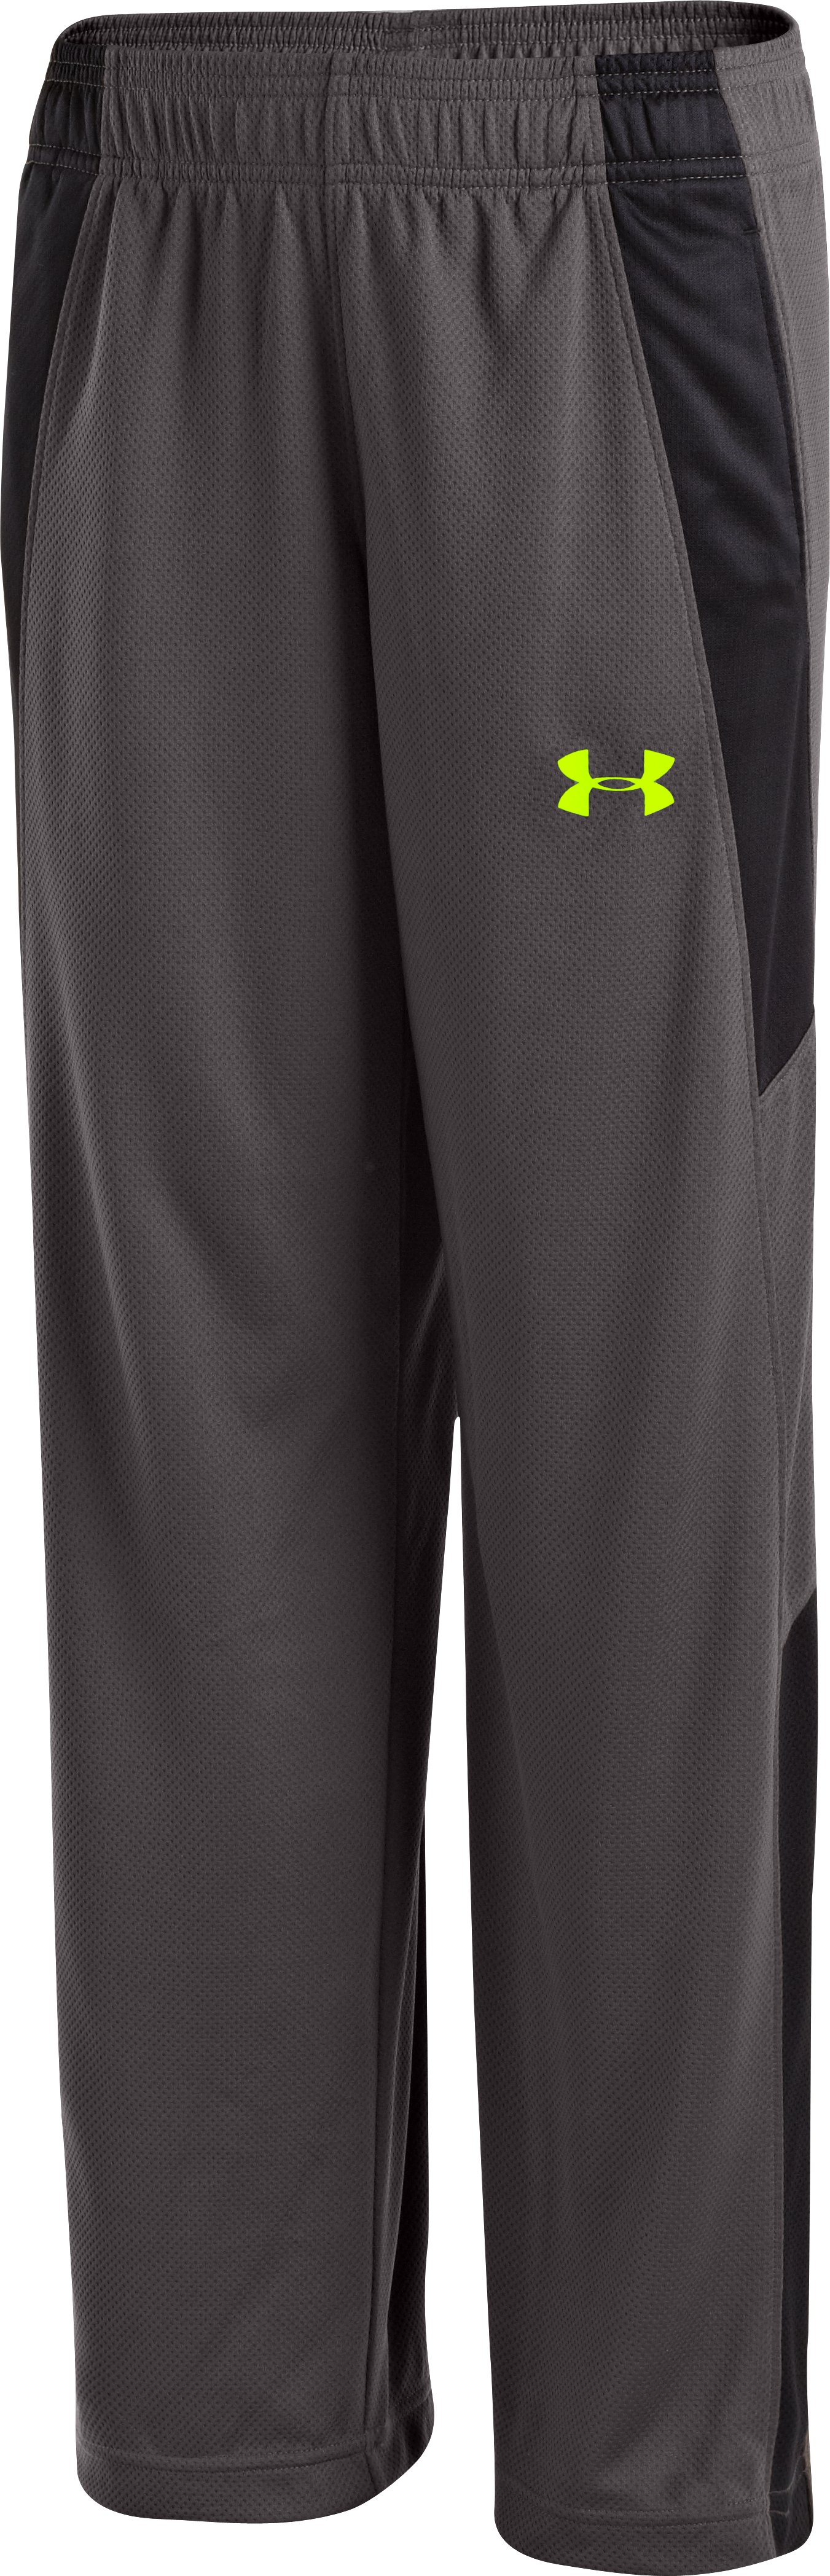 Boys' UA Hero Warm-Up Pants, Charcoal, zoomed image